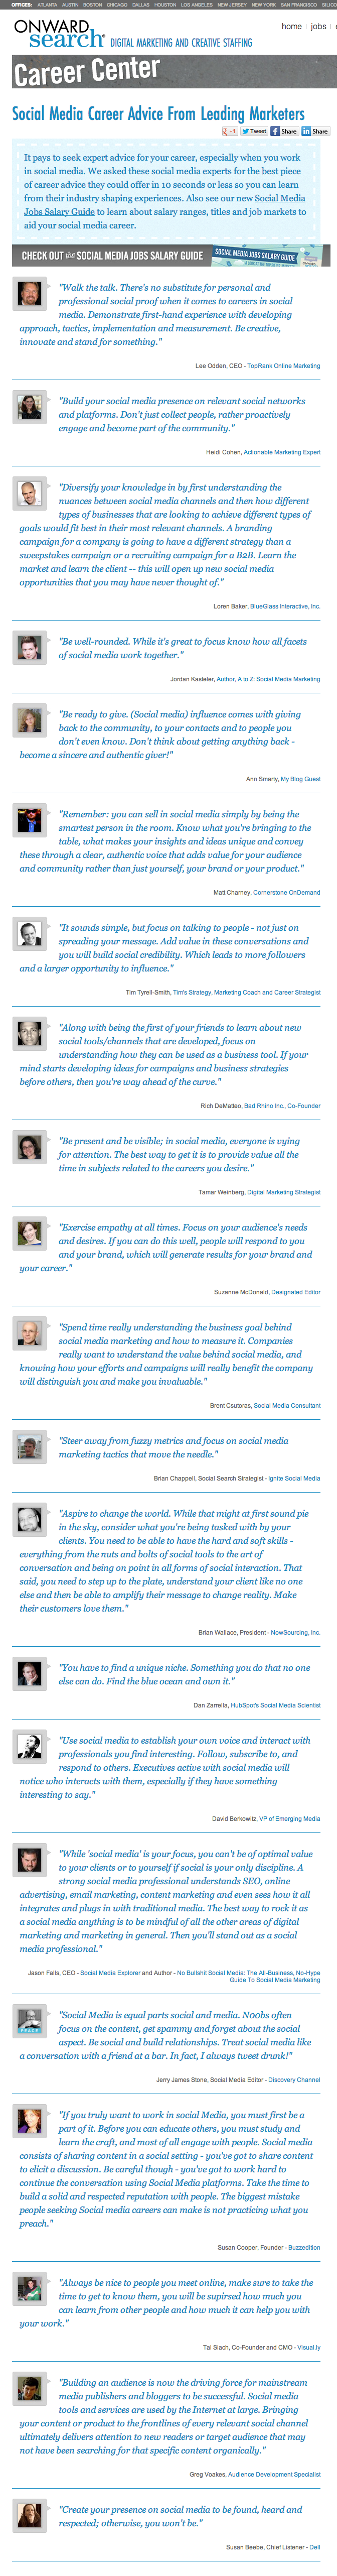 Social Media Career Advice From Leading Marketers